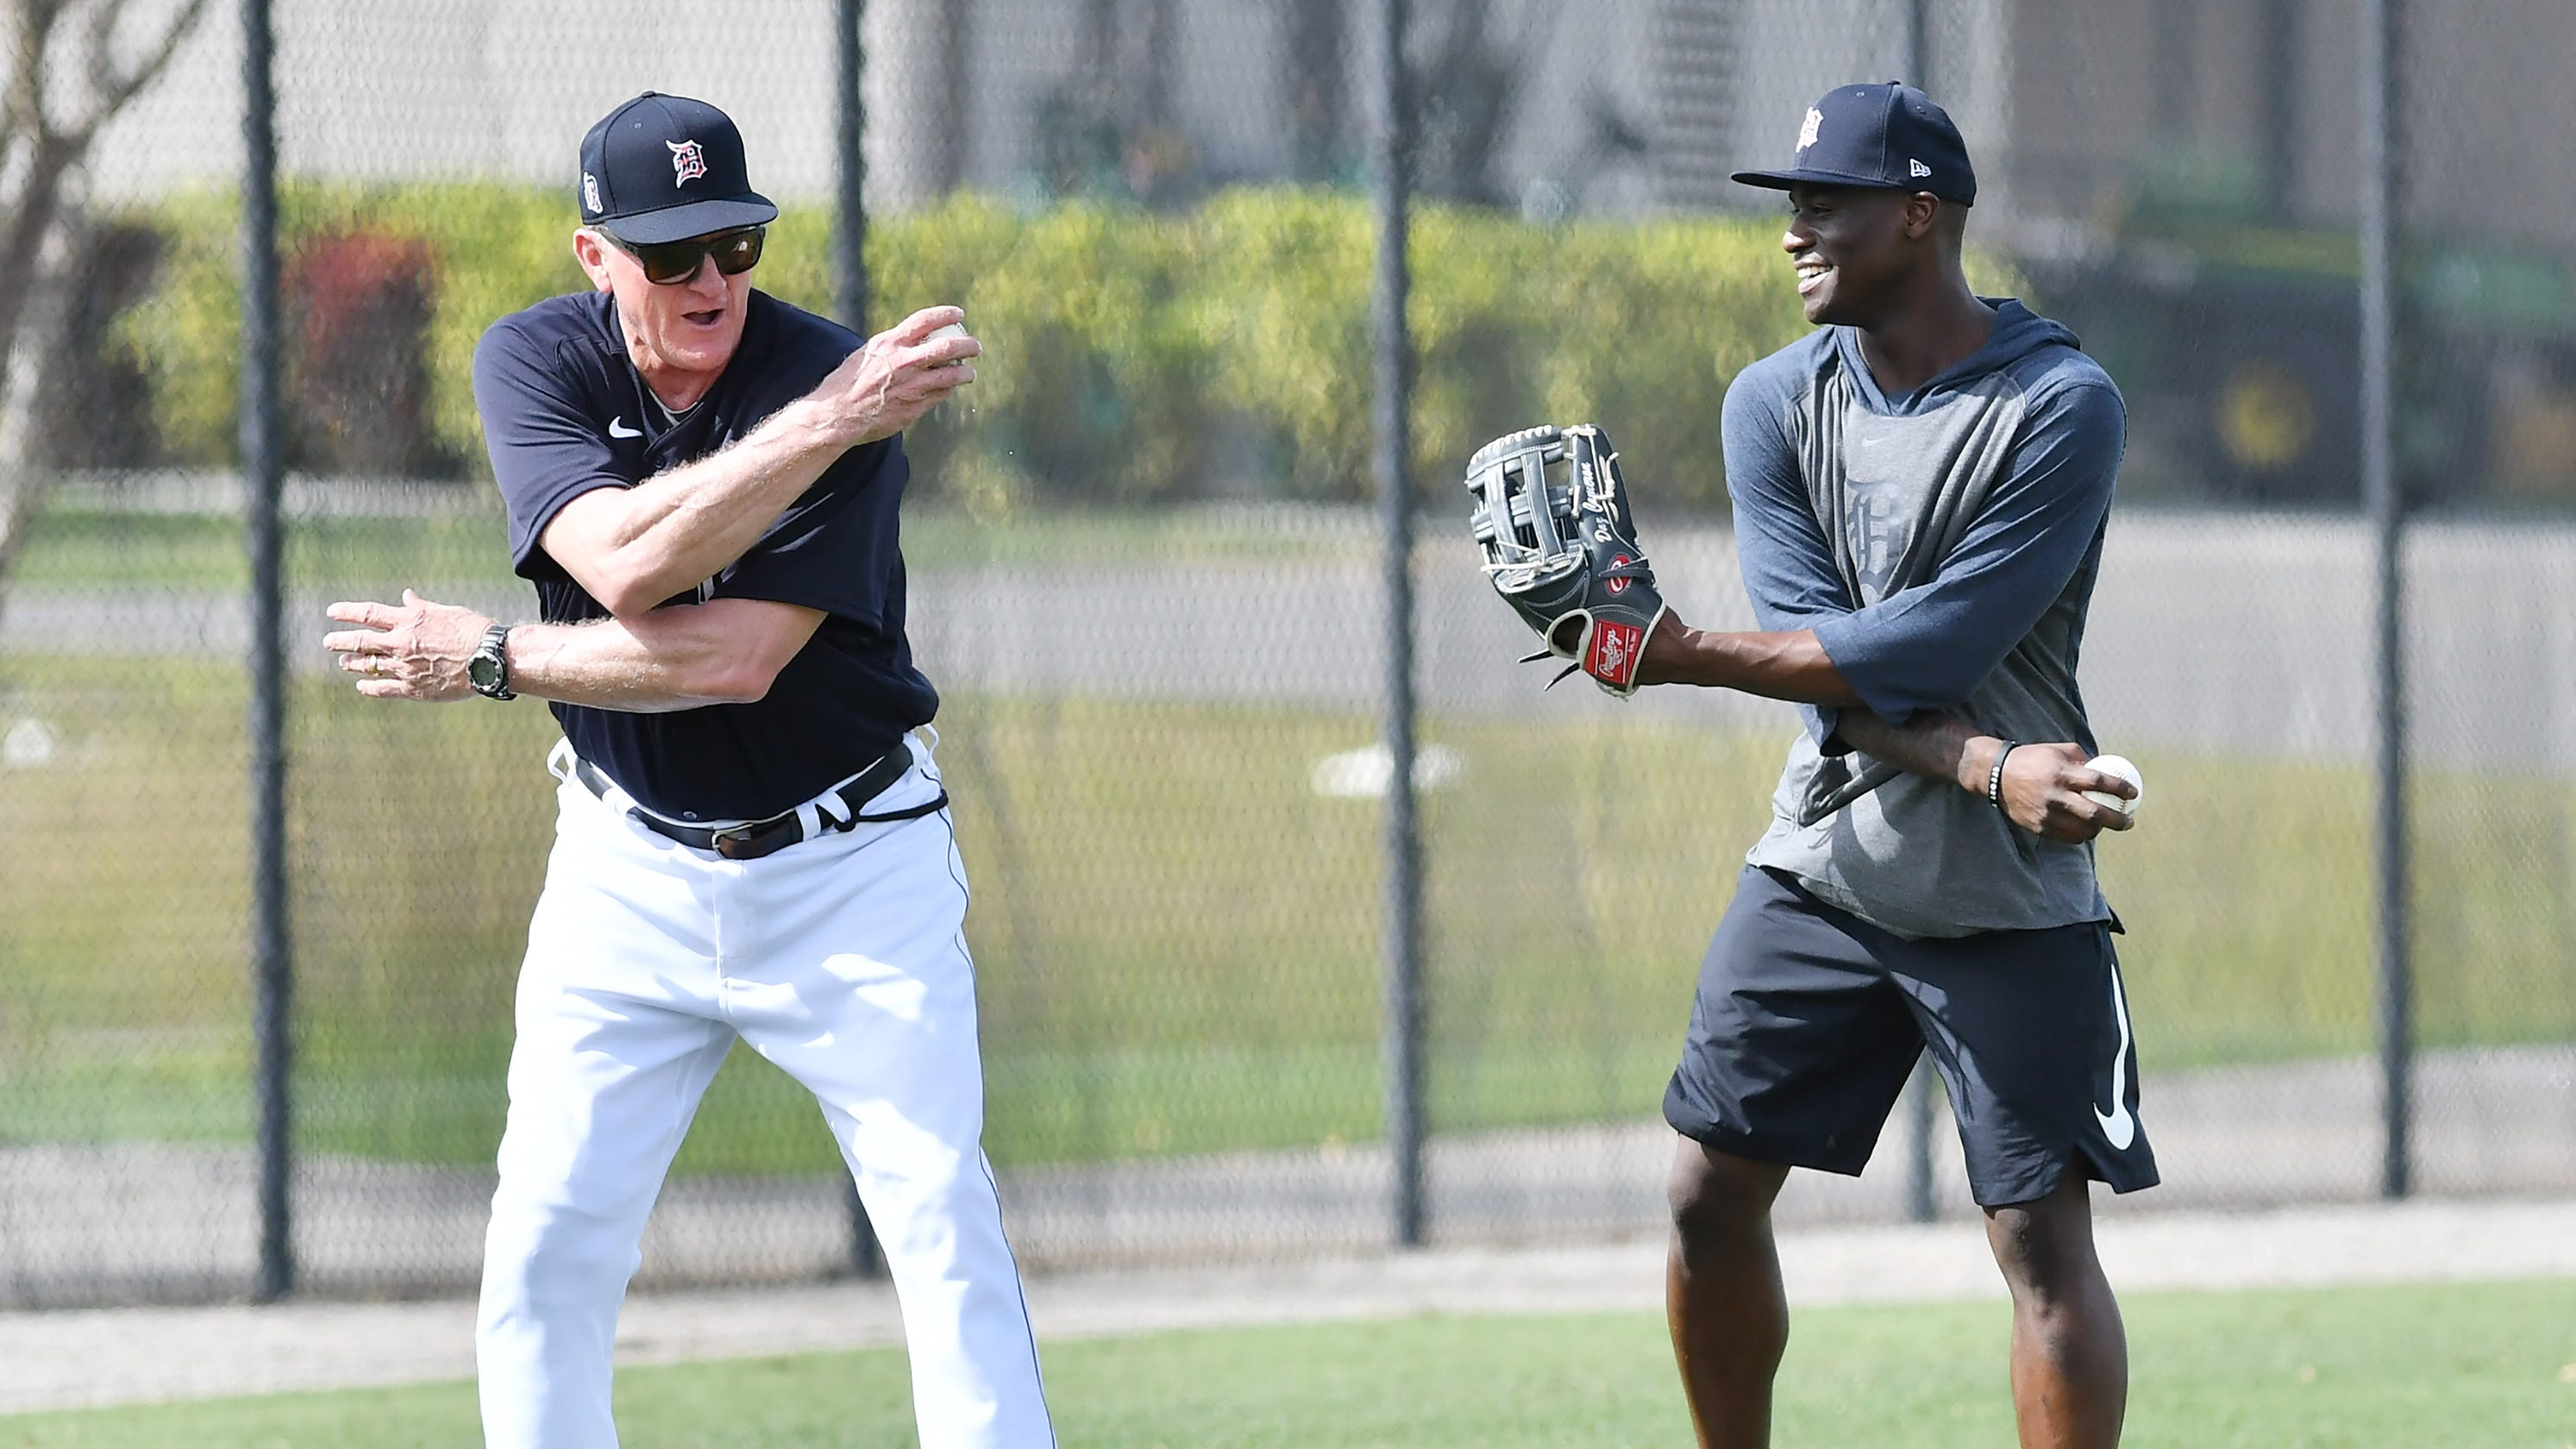 'No regrets:' Tigers longtime outfield instructor Gene Roof retires